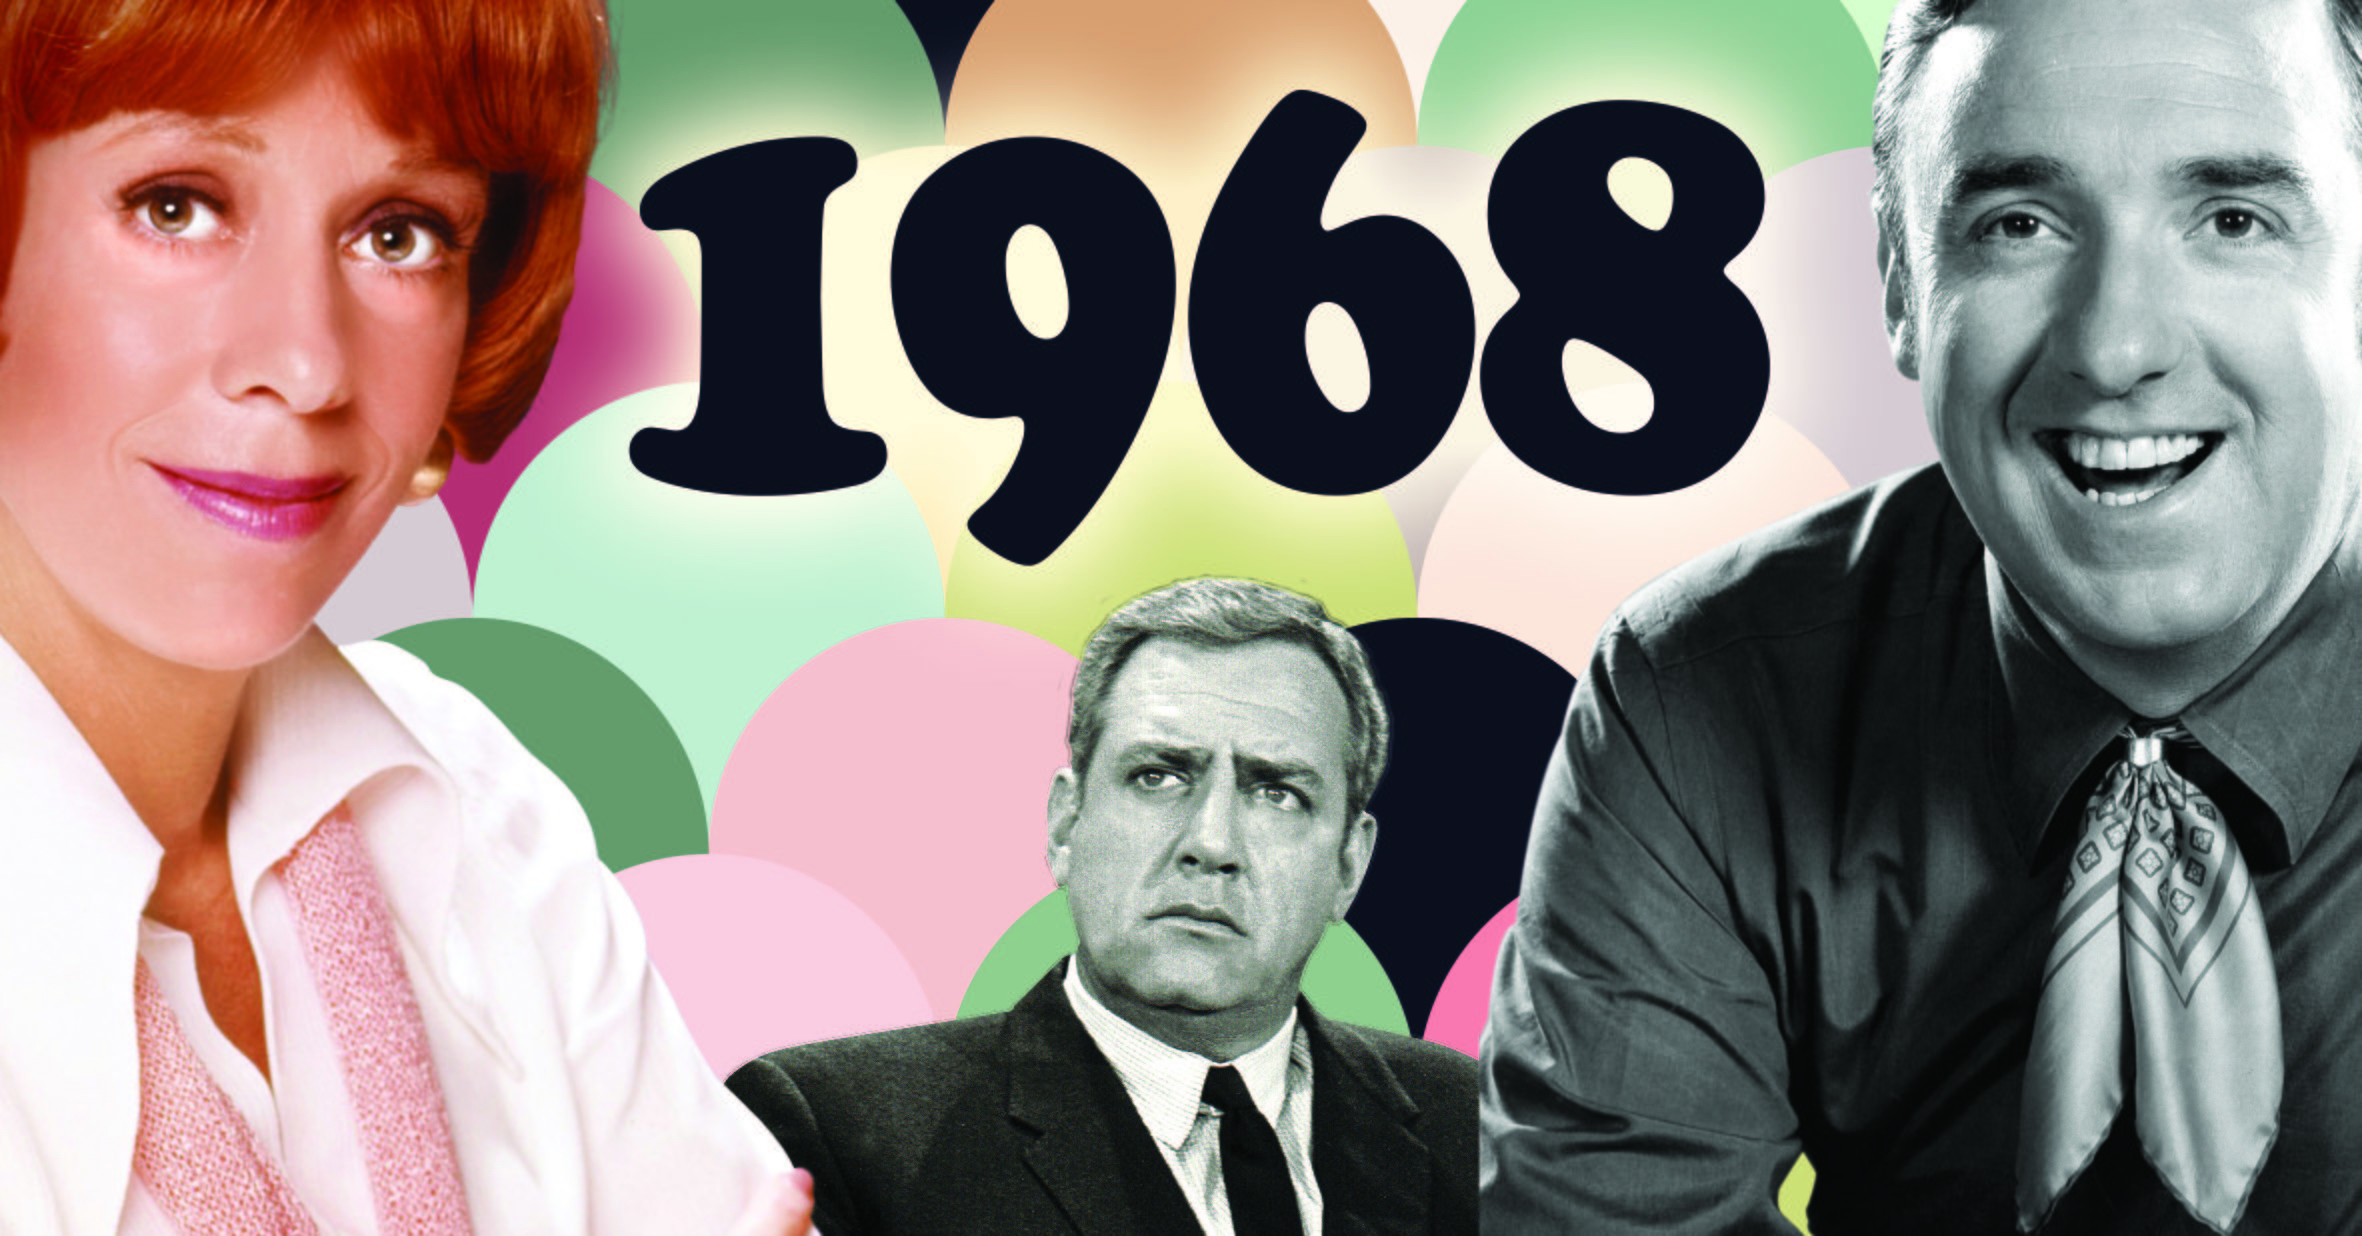 Can you pick the top-rated shows of 1968?